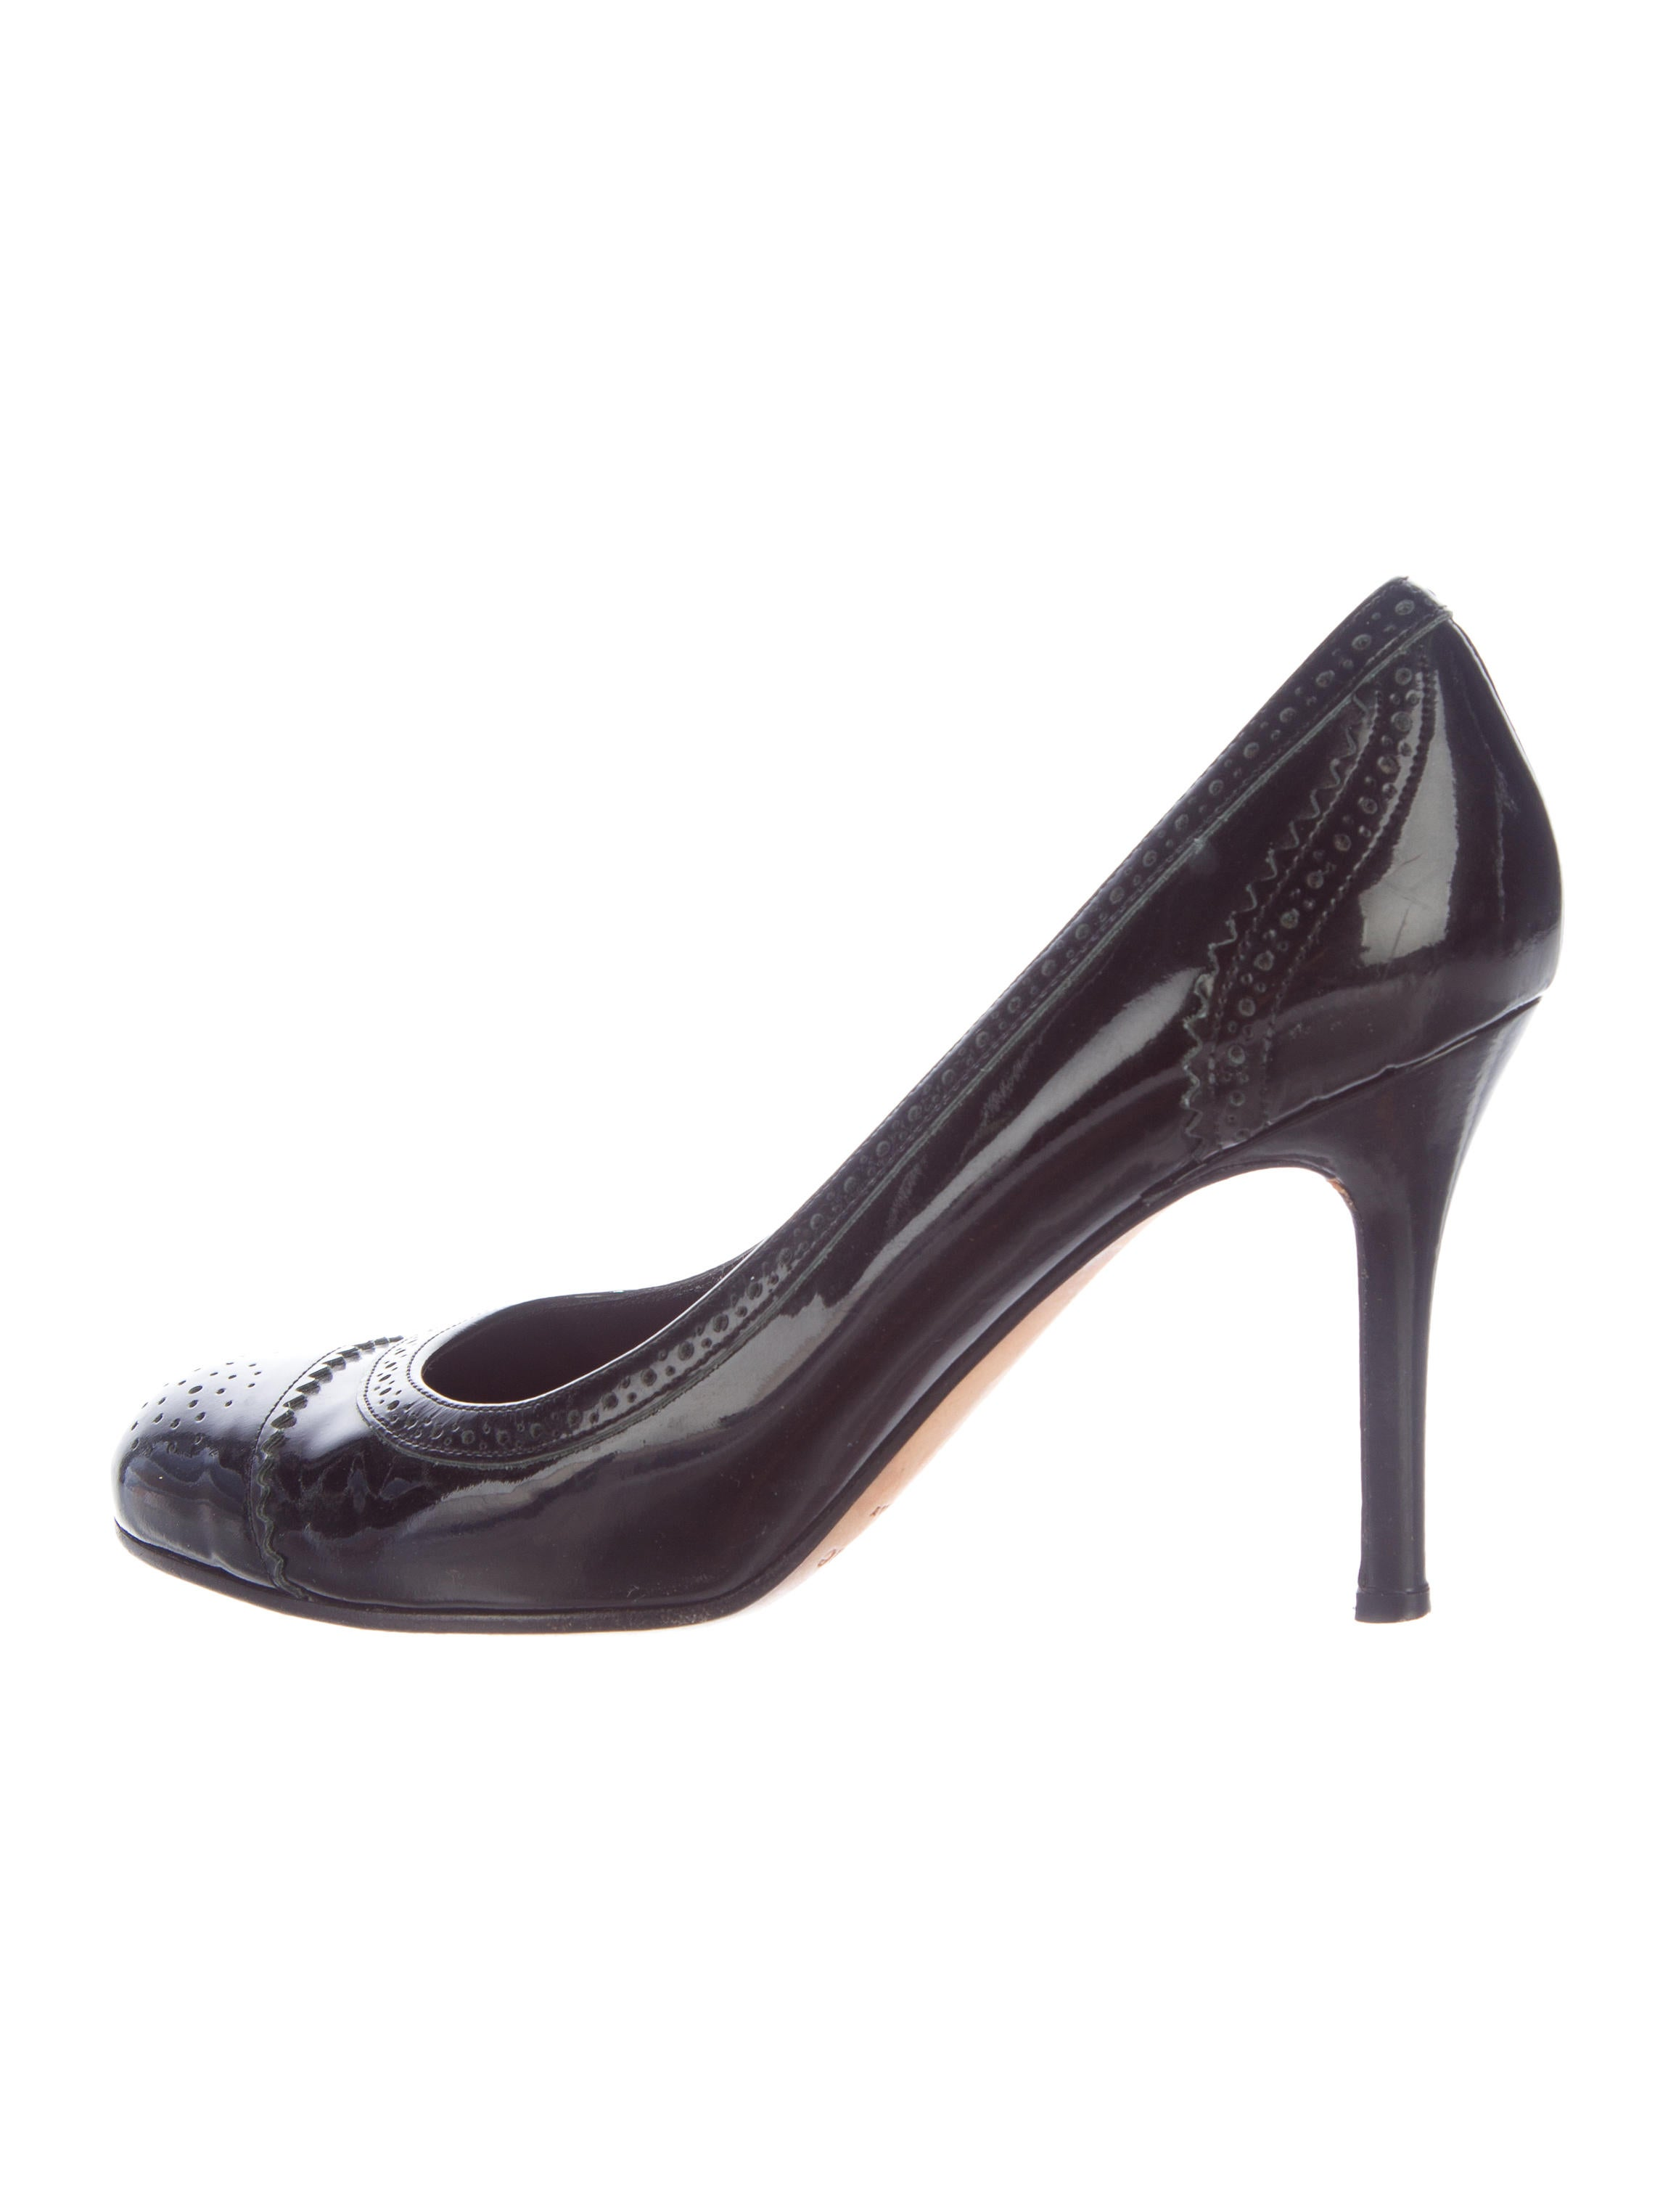 bc45fcdb9d63 Kate Spade New York Patent Leather Brogue Pumps - Shoes - WKA64471 ...